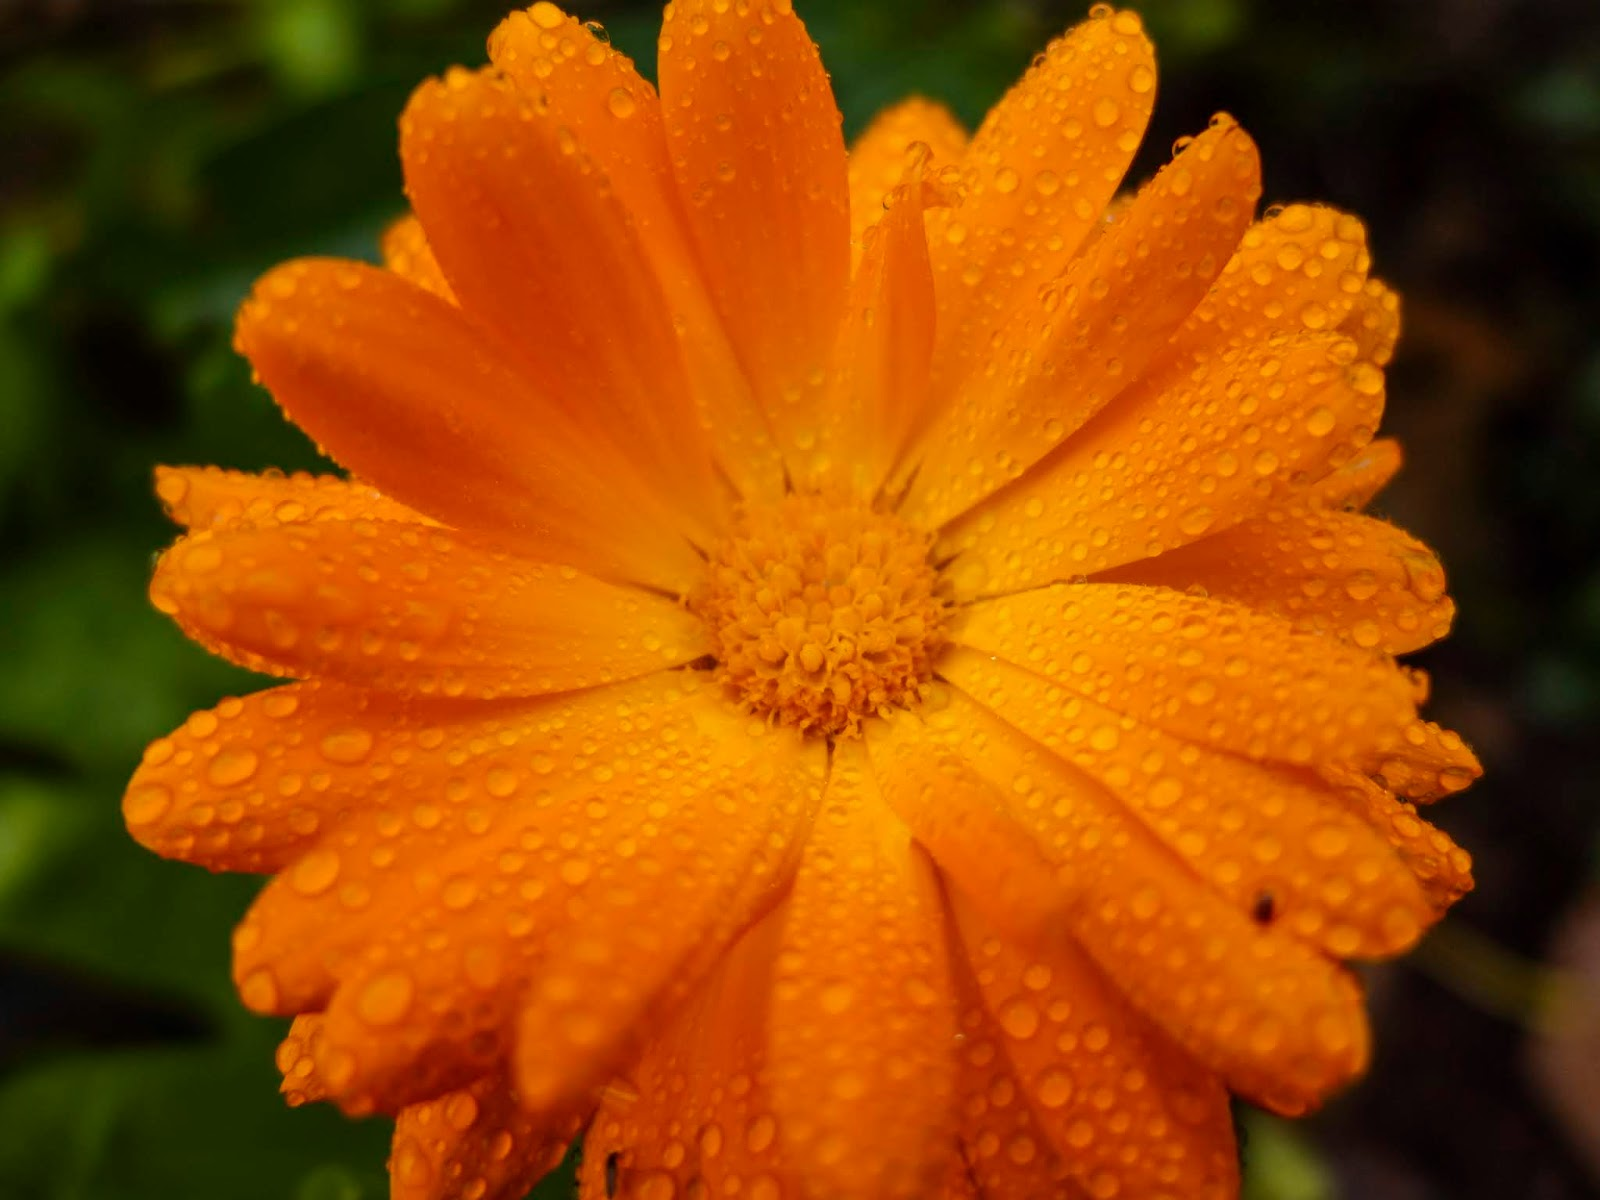 Raindrops on an orange Calendula flower.